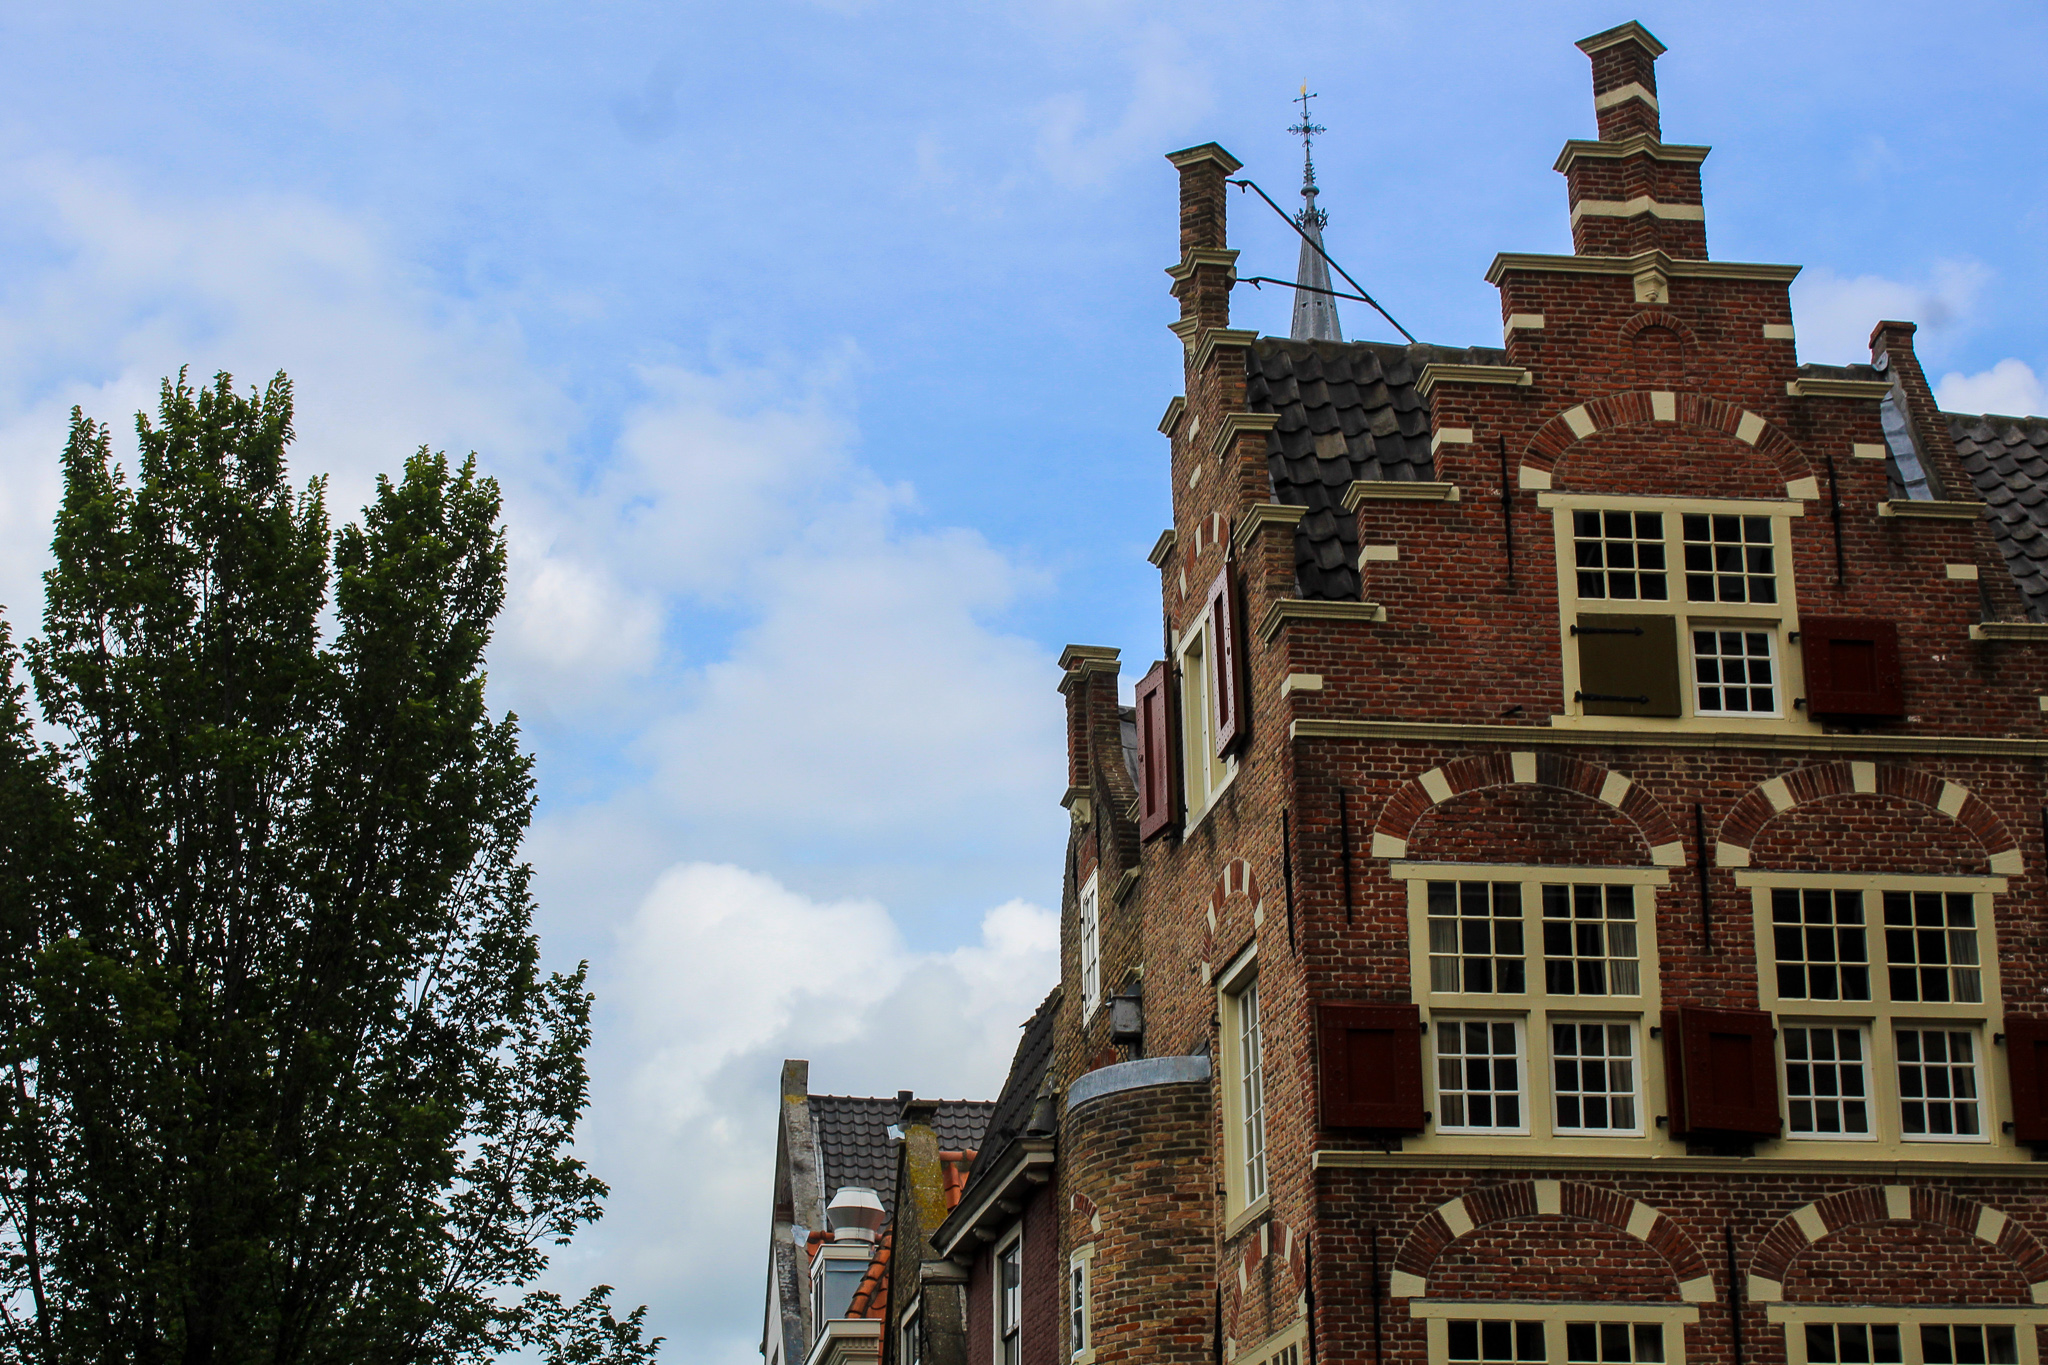 what to do in delft? ogle at the buildings